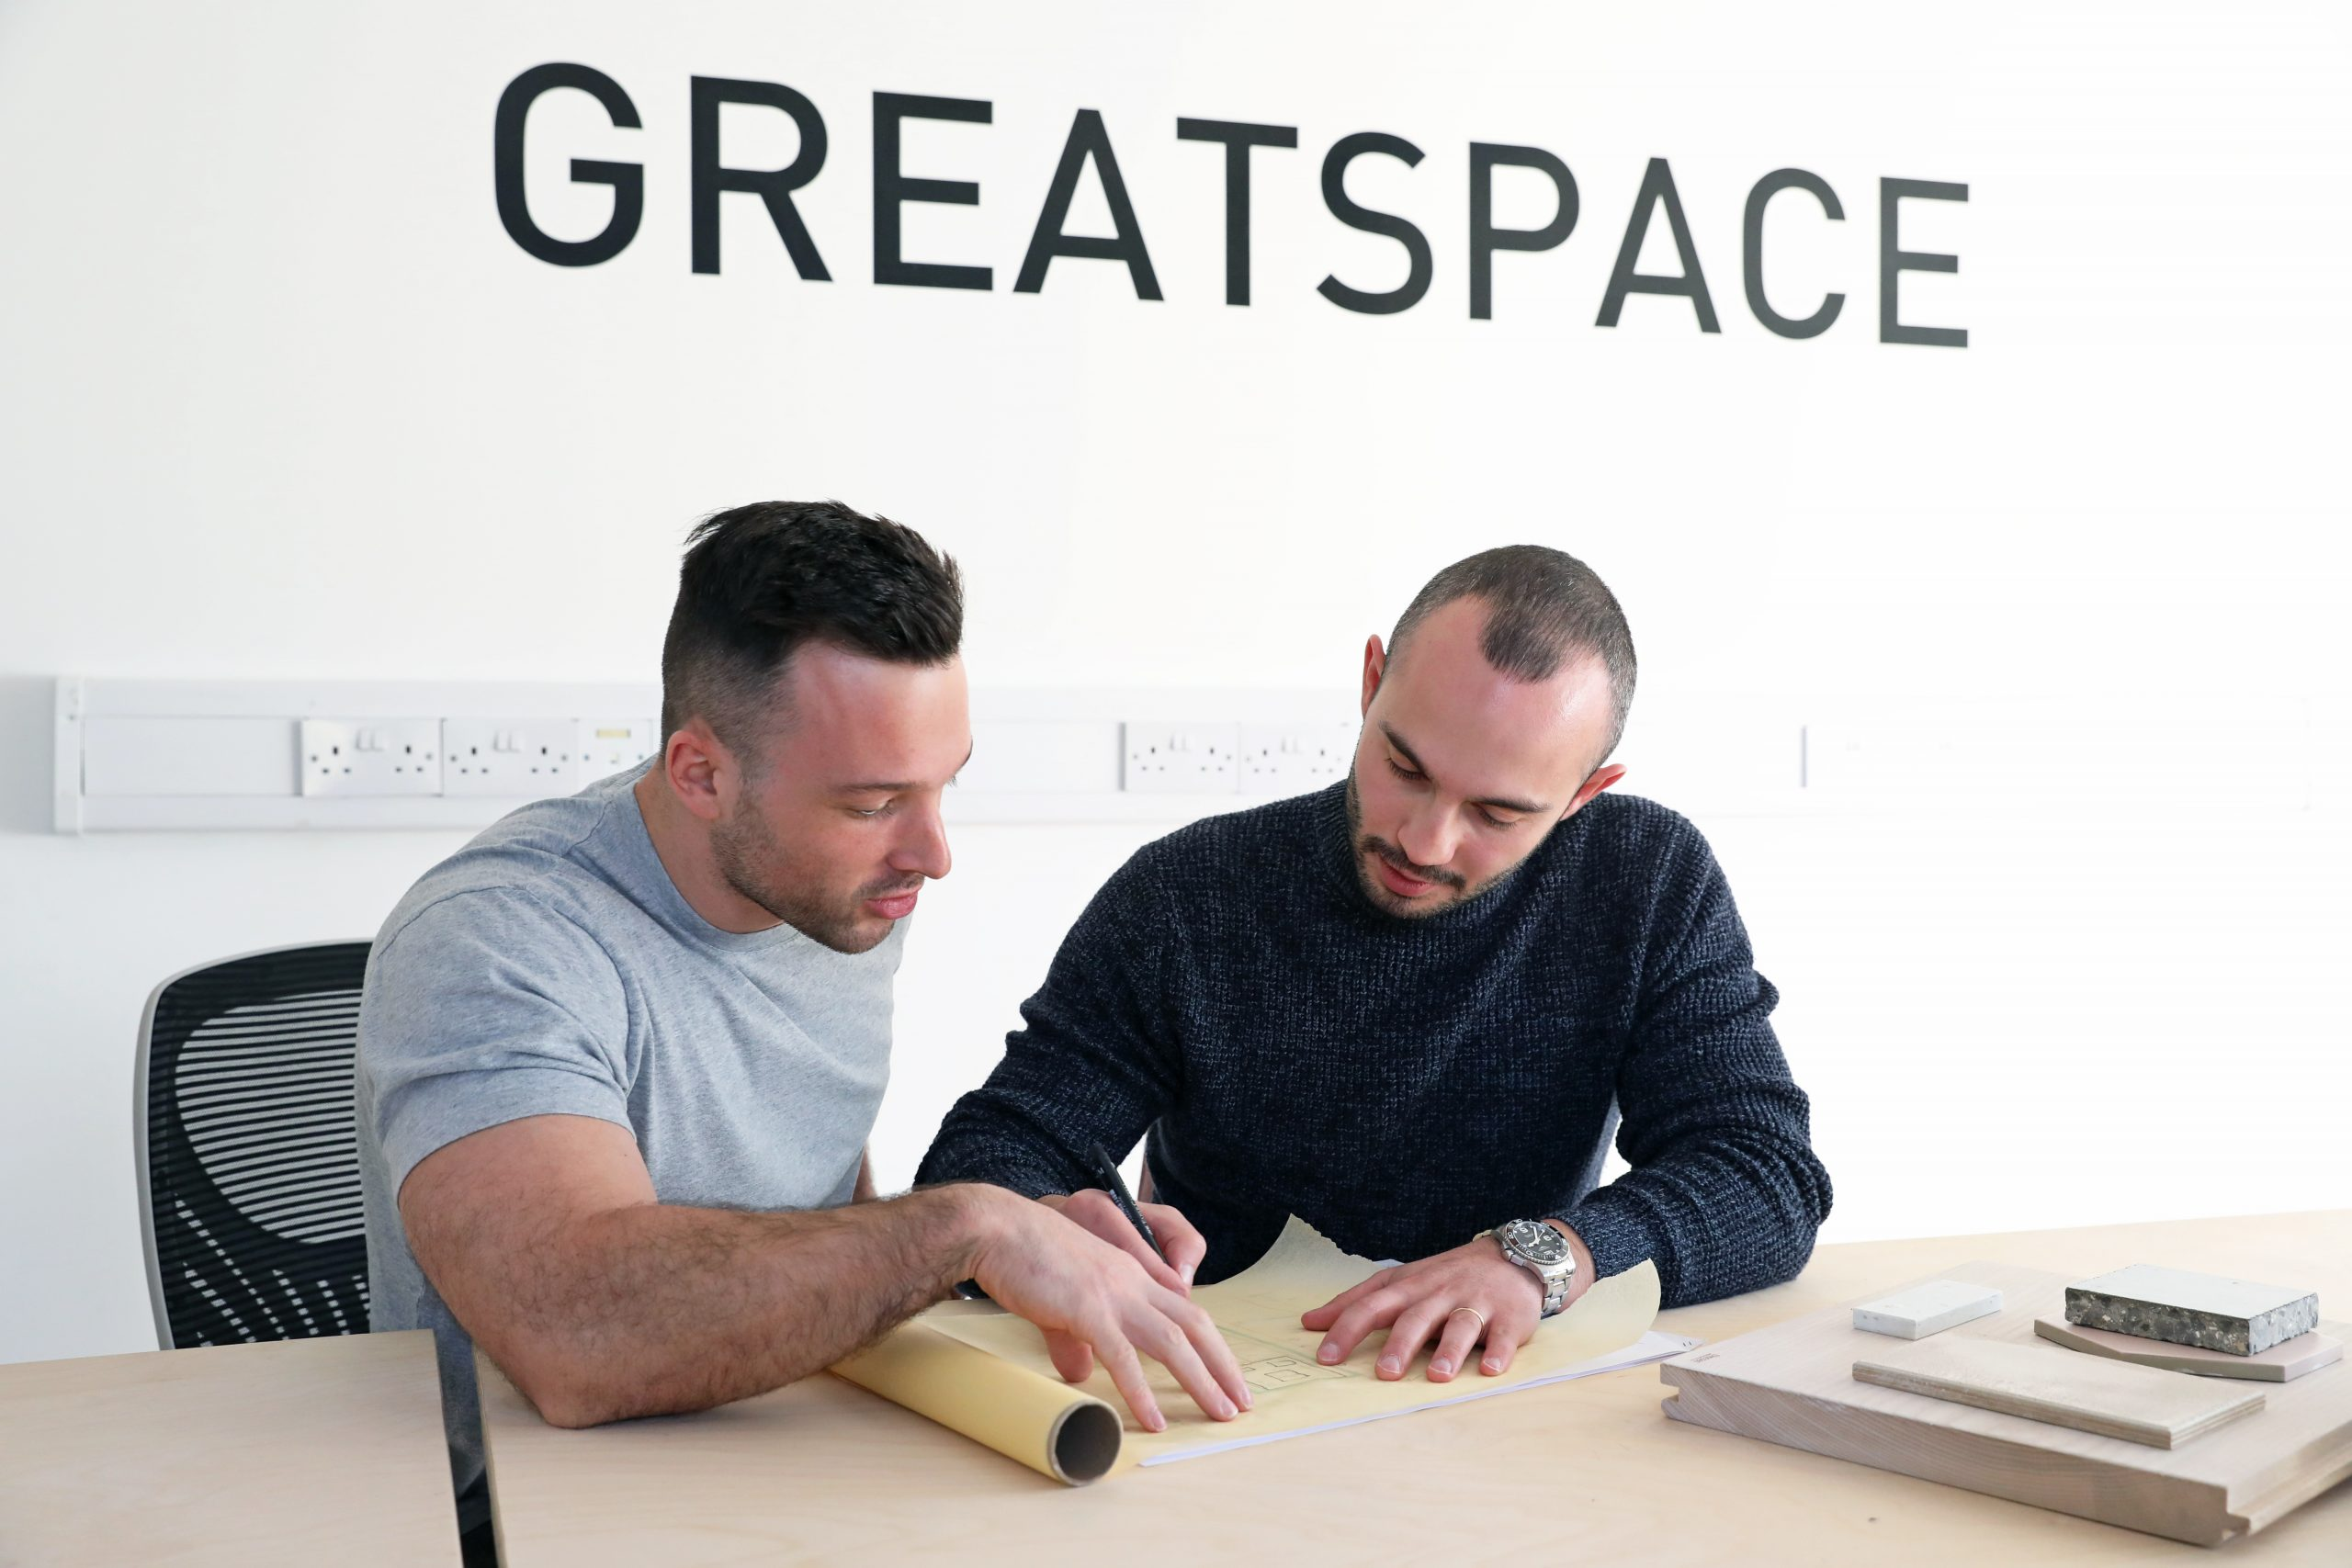 Greatspace Studio